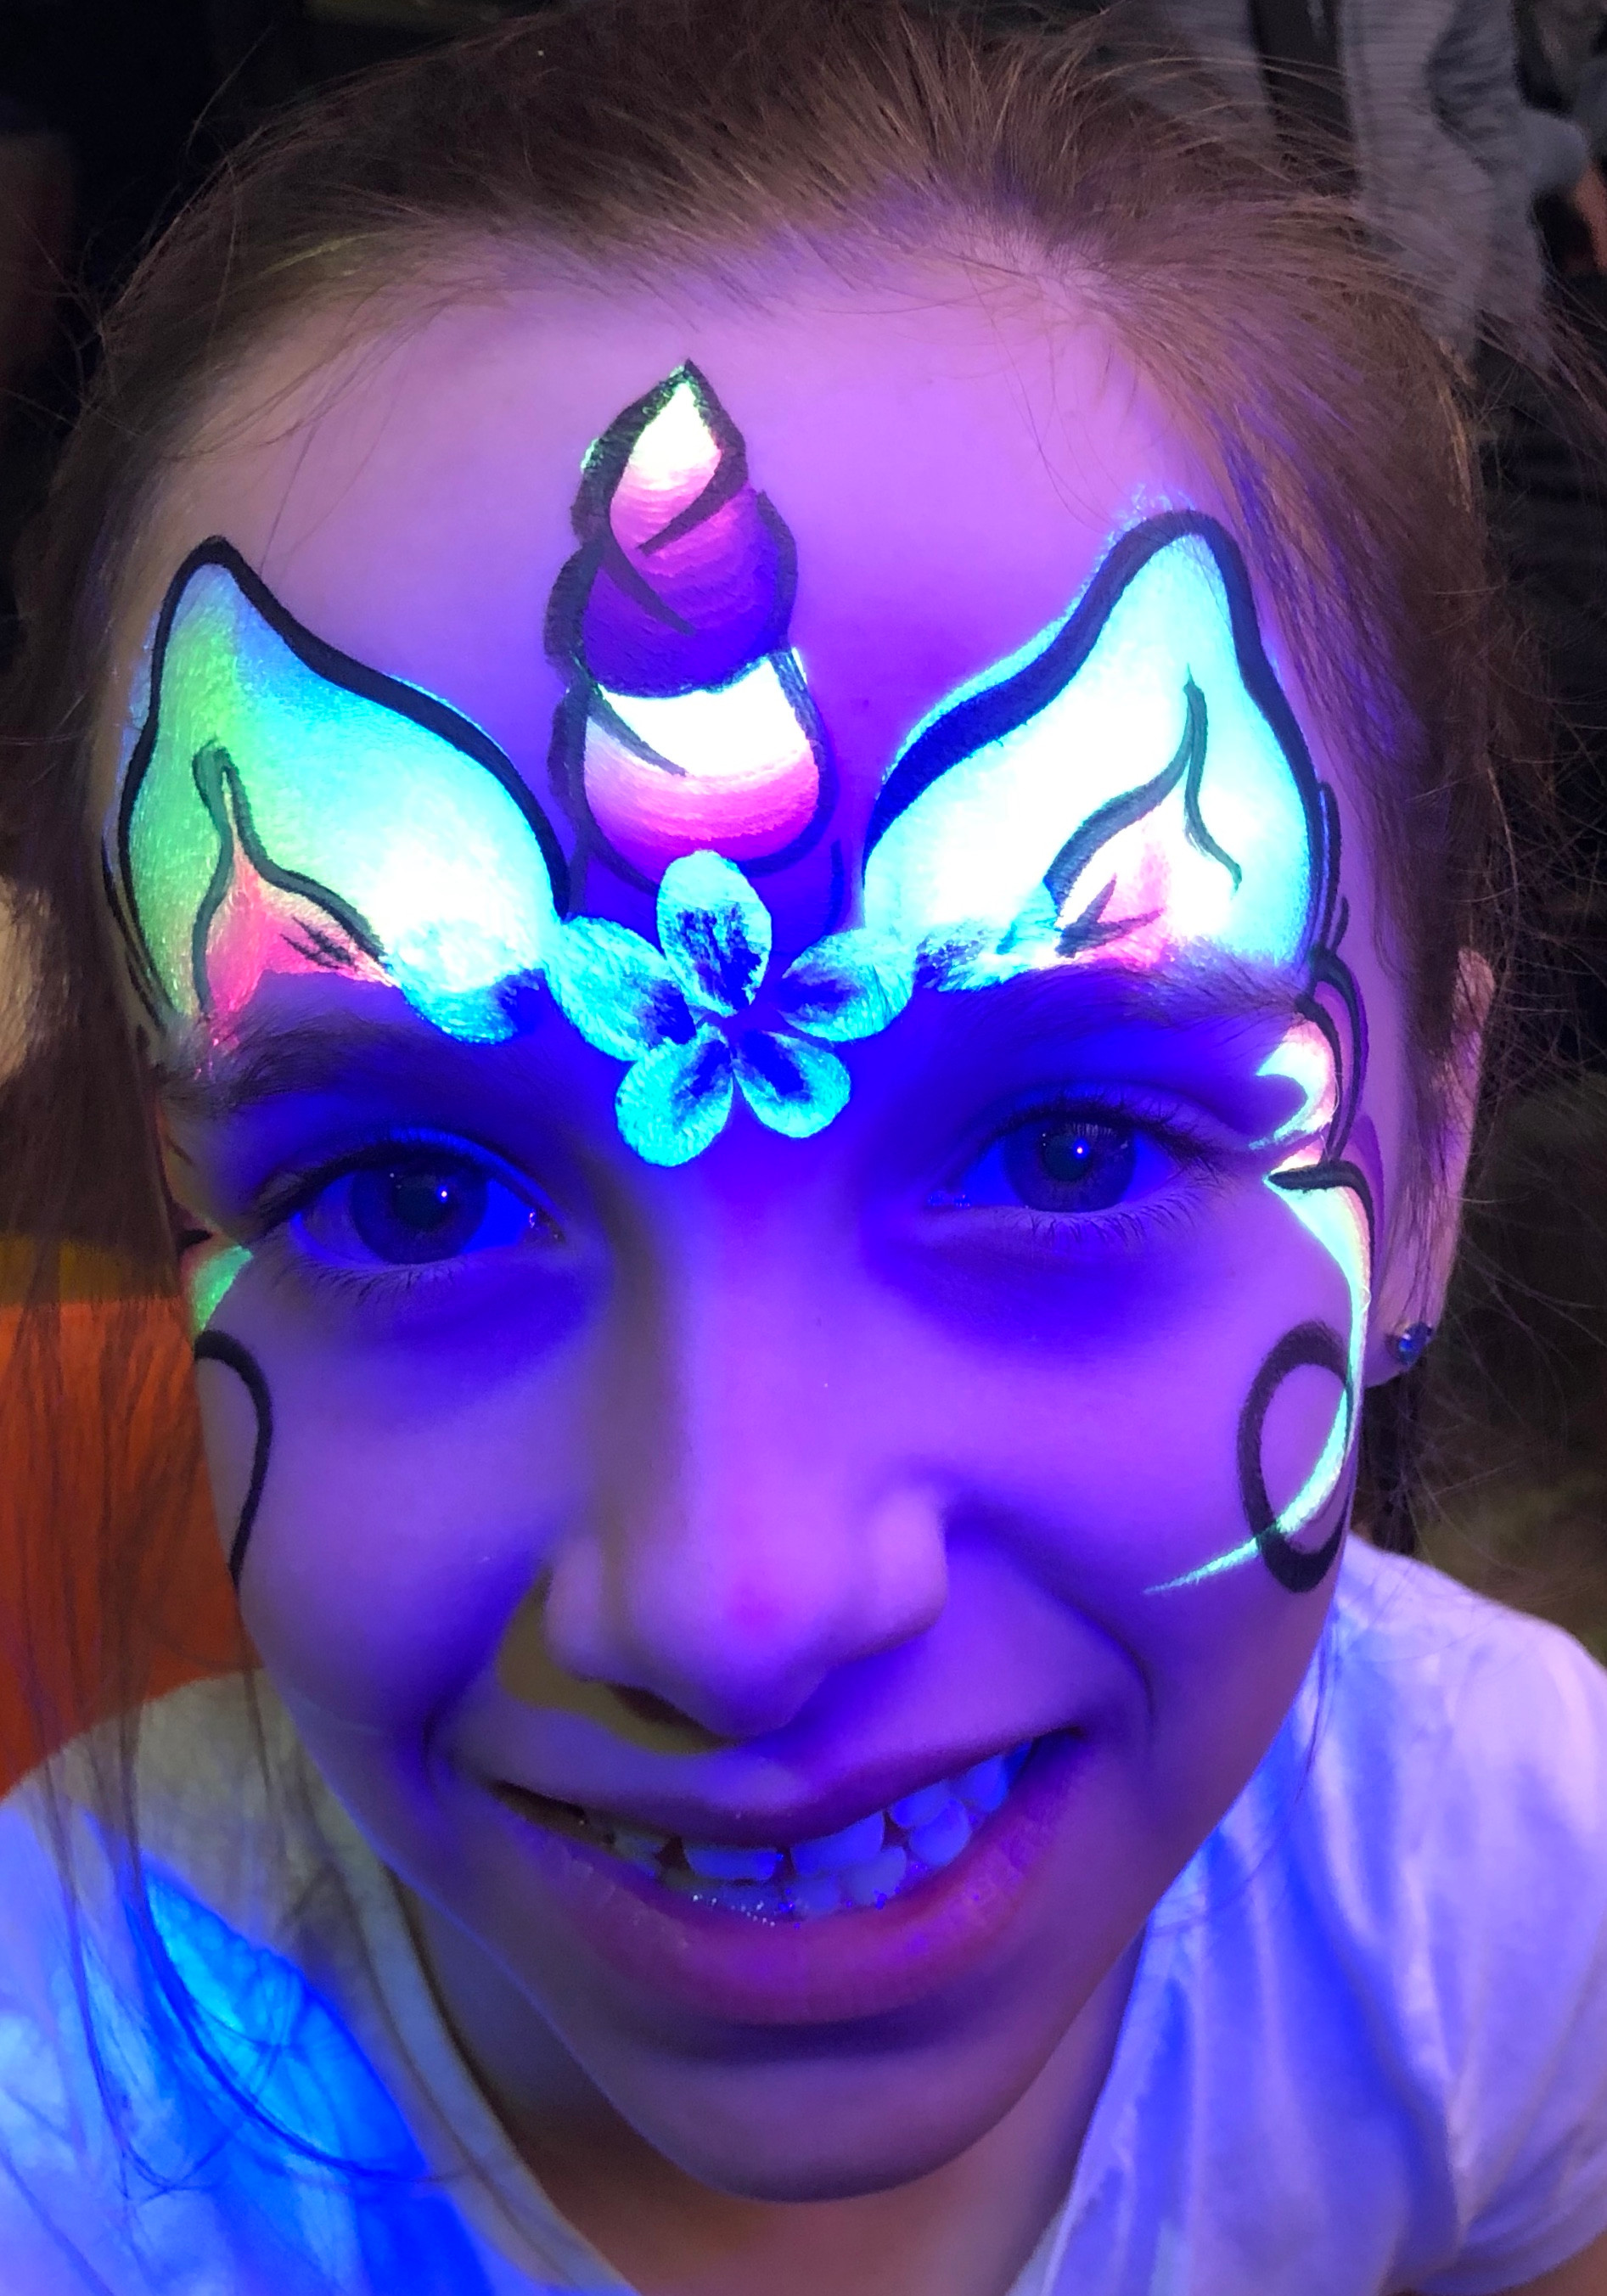 UV NEON Face Painting - Up to 25 guests